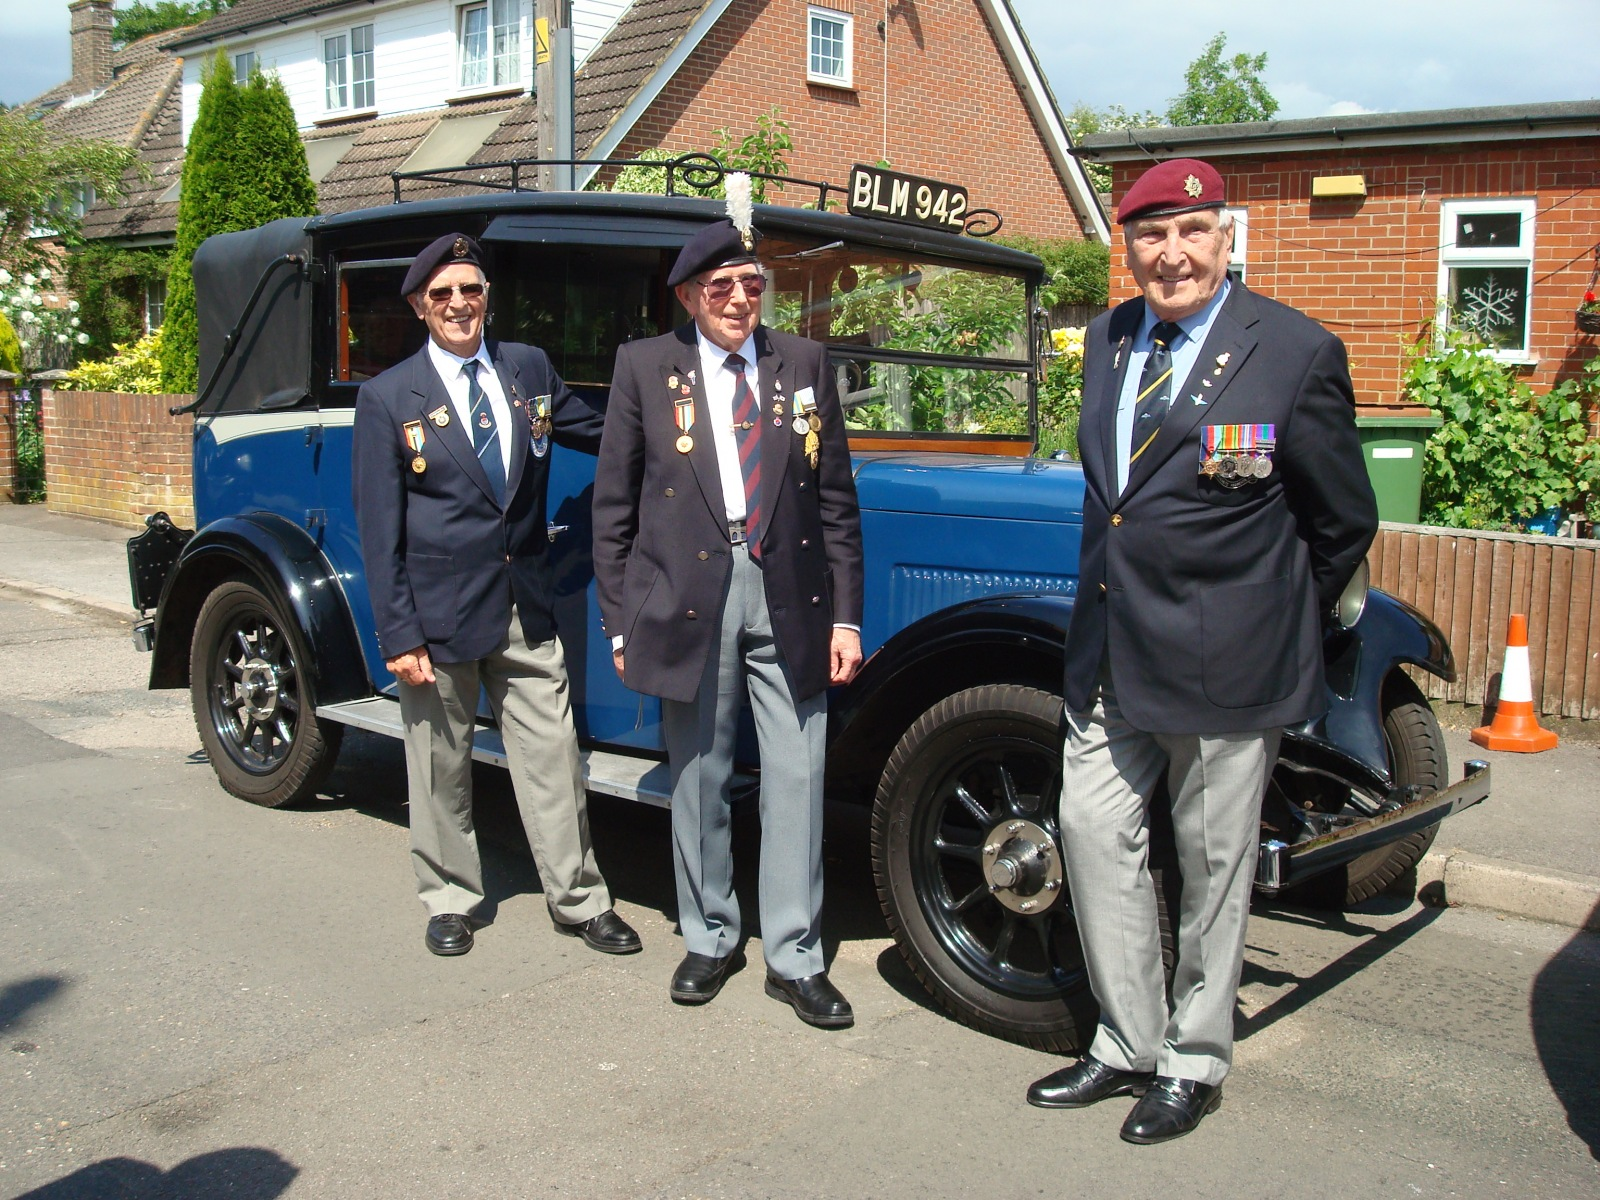 Military Veterans' Trip to Worthing - Old comrades stretch their legs